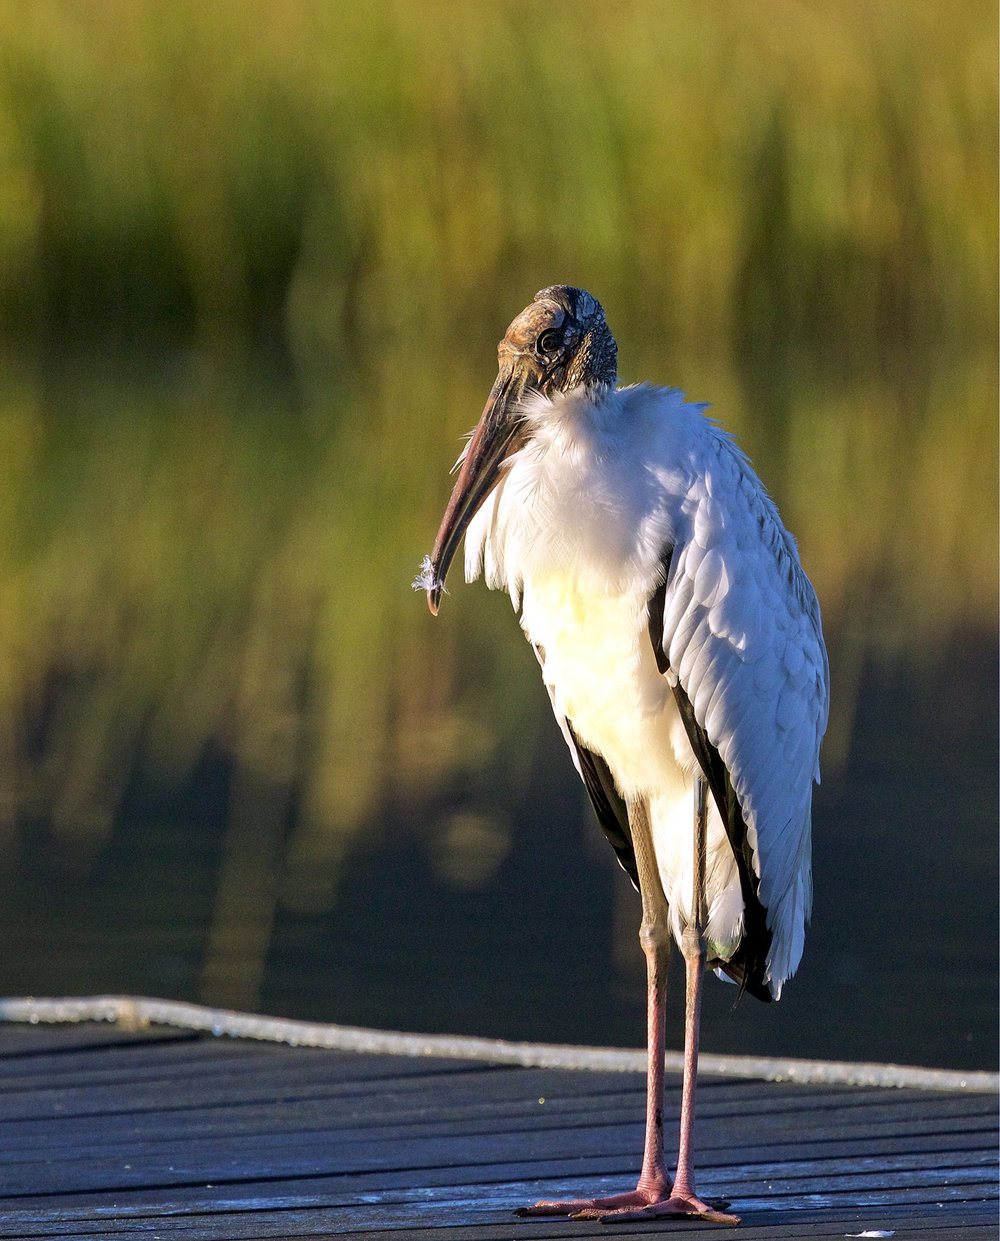 The Wood Stork says I feel pretty too!